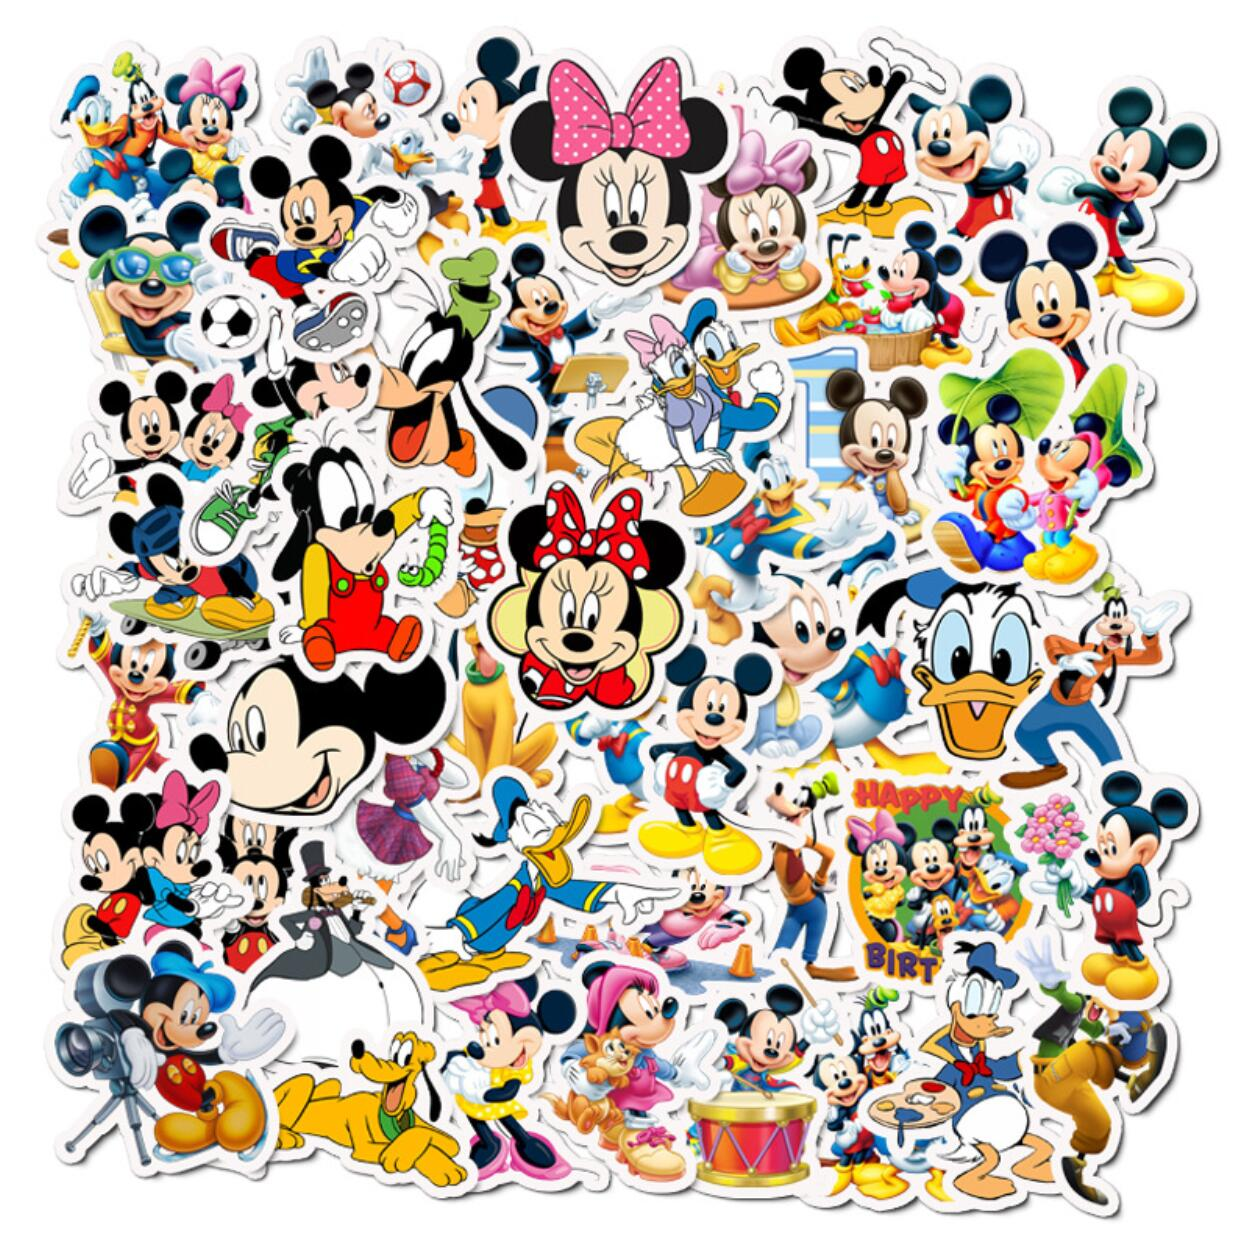 50 Pcs Mickey Mouse Disney Stickers Albums Graffiti Laptop Skateboard Luggage Guitar Bicycle Children DIY Decal Sticker